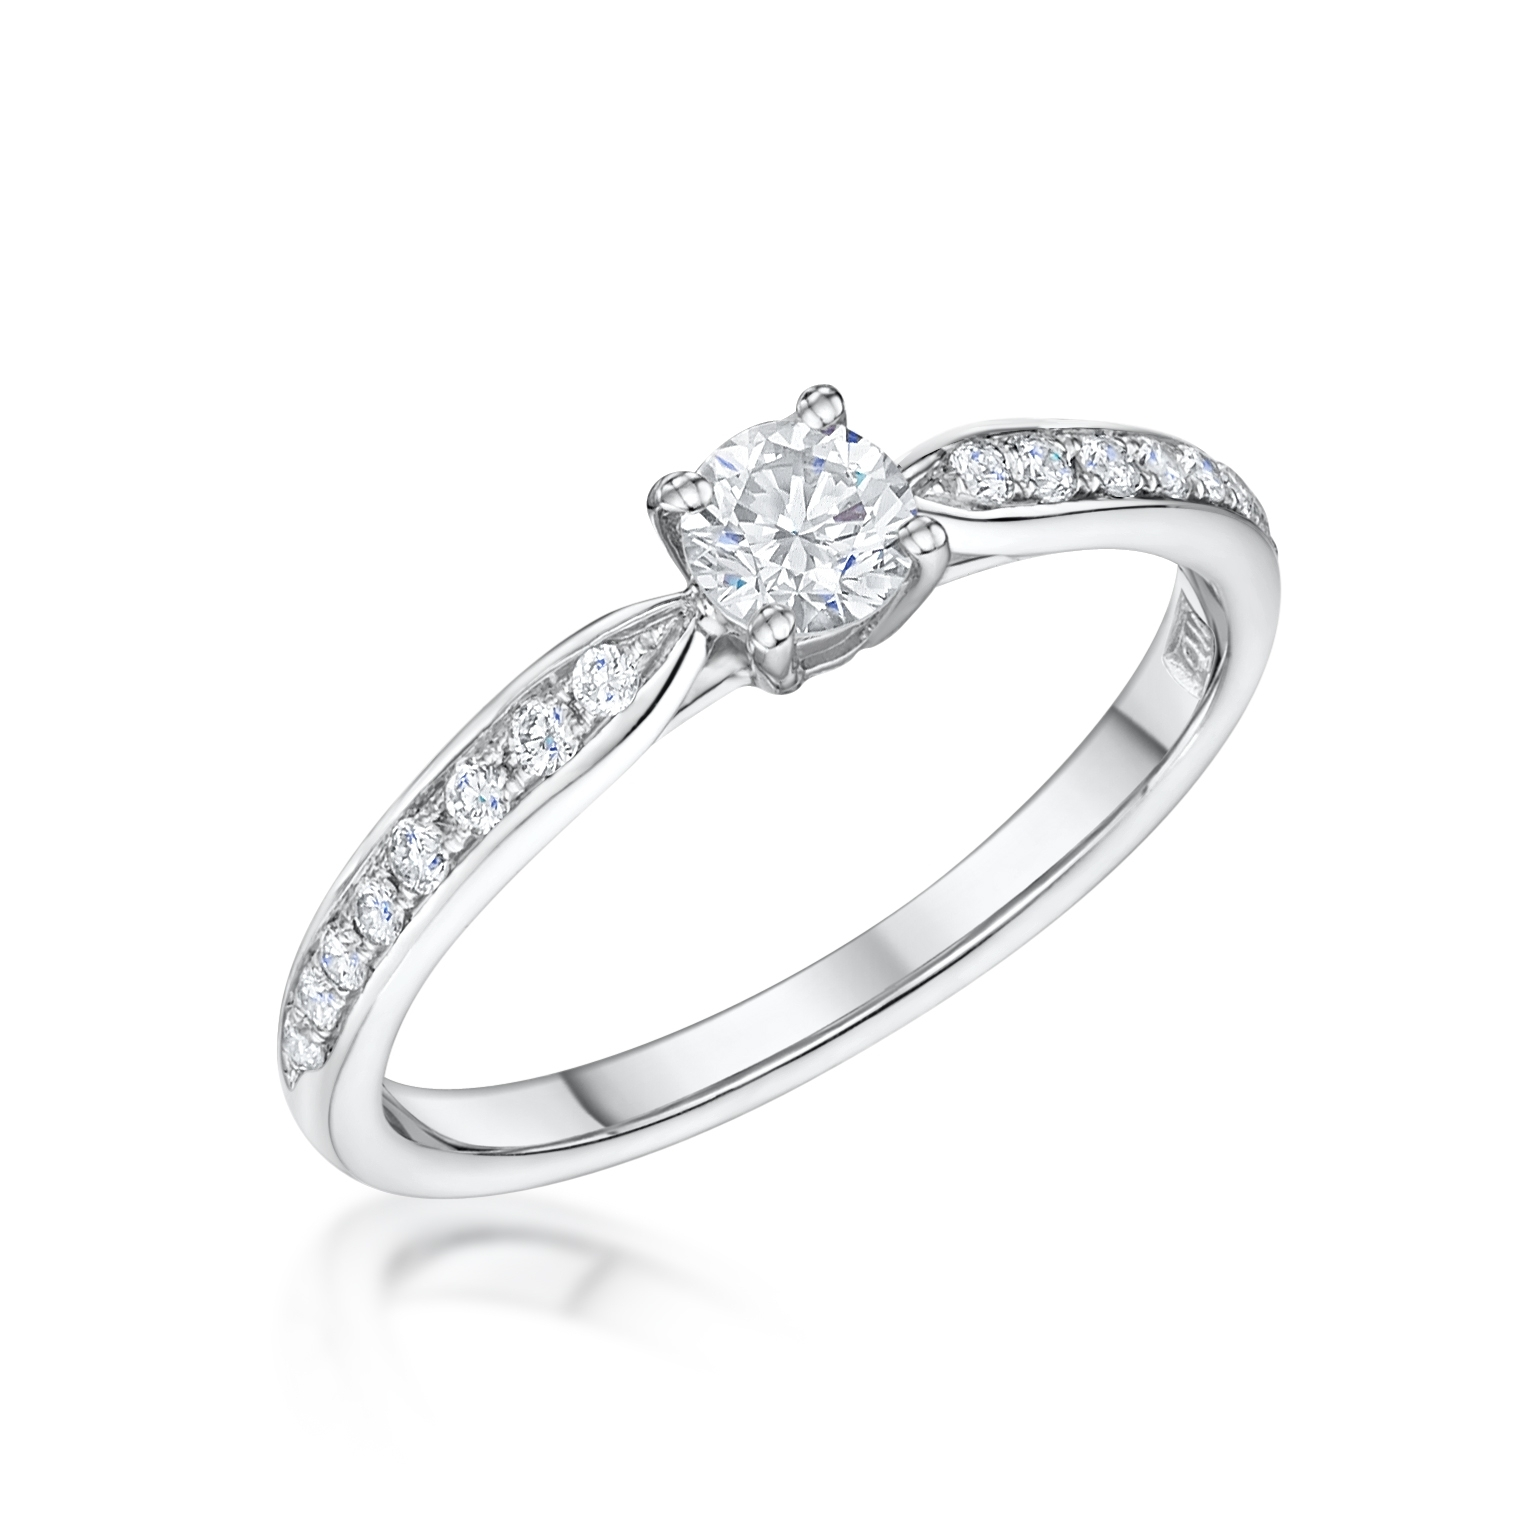 Tapered Diamond Solitaire With Pave Shoulders With Regard To Newest Diamond Tapered Wedding Bands (View 7 of 15)